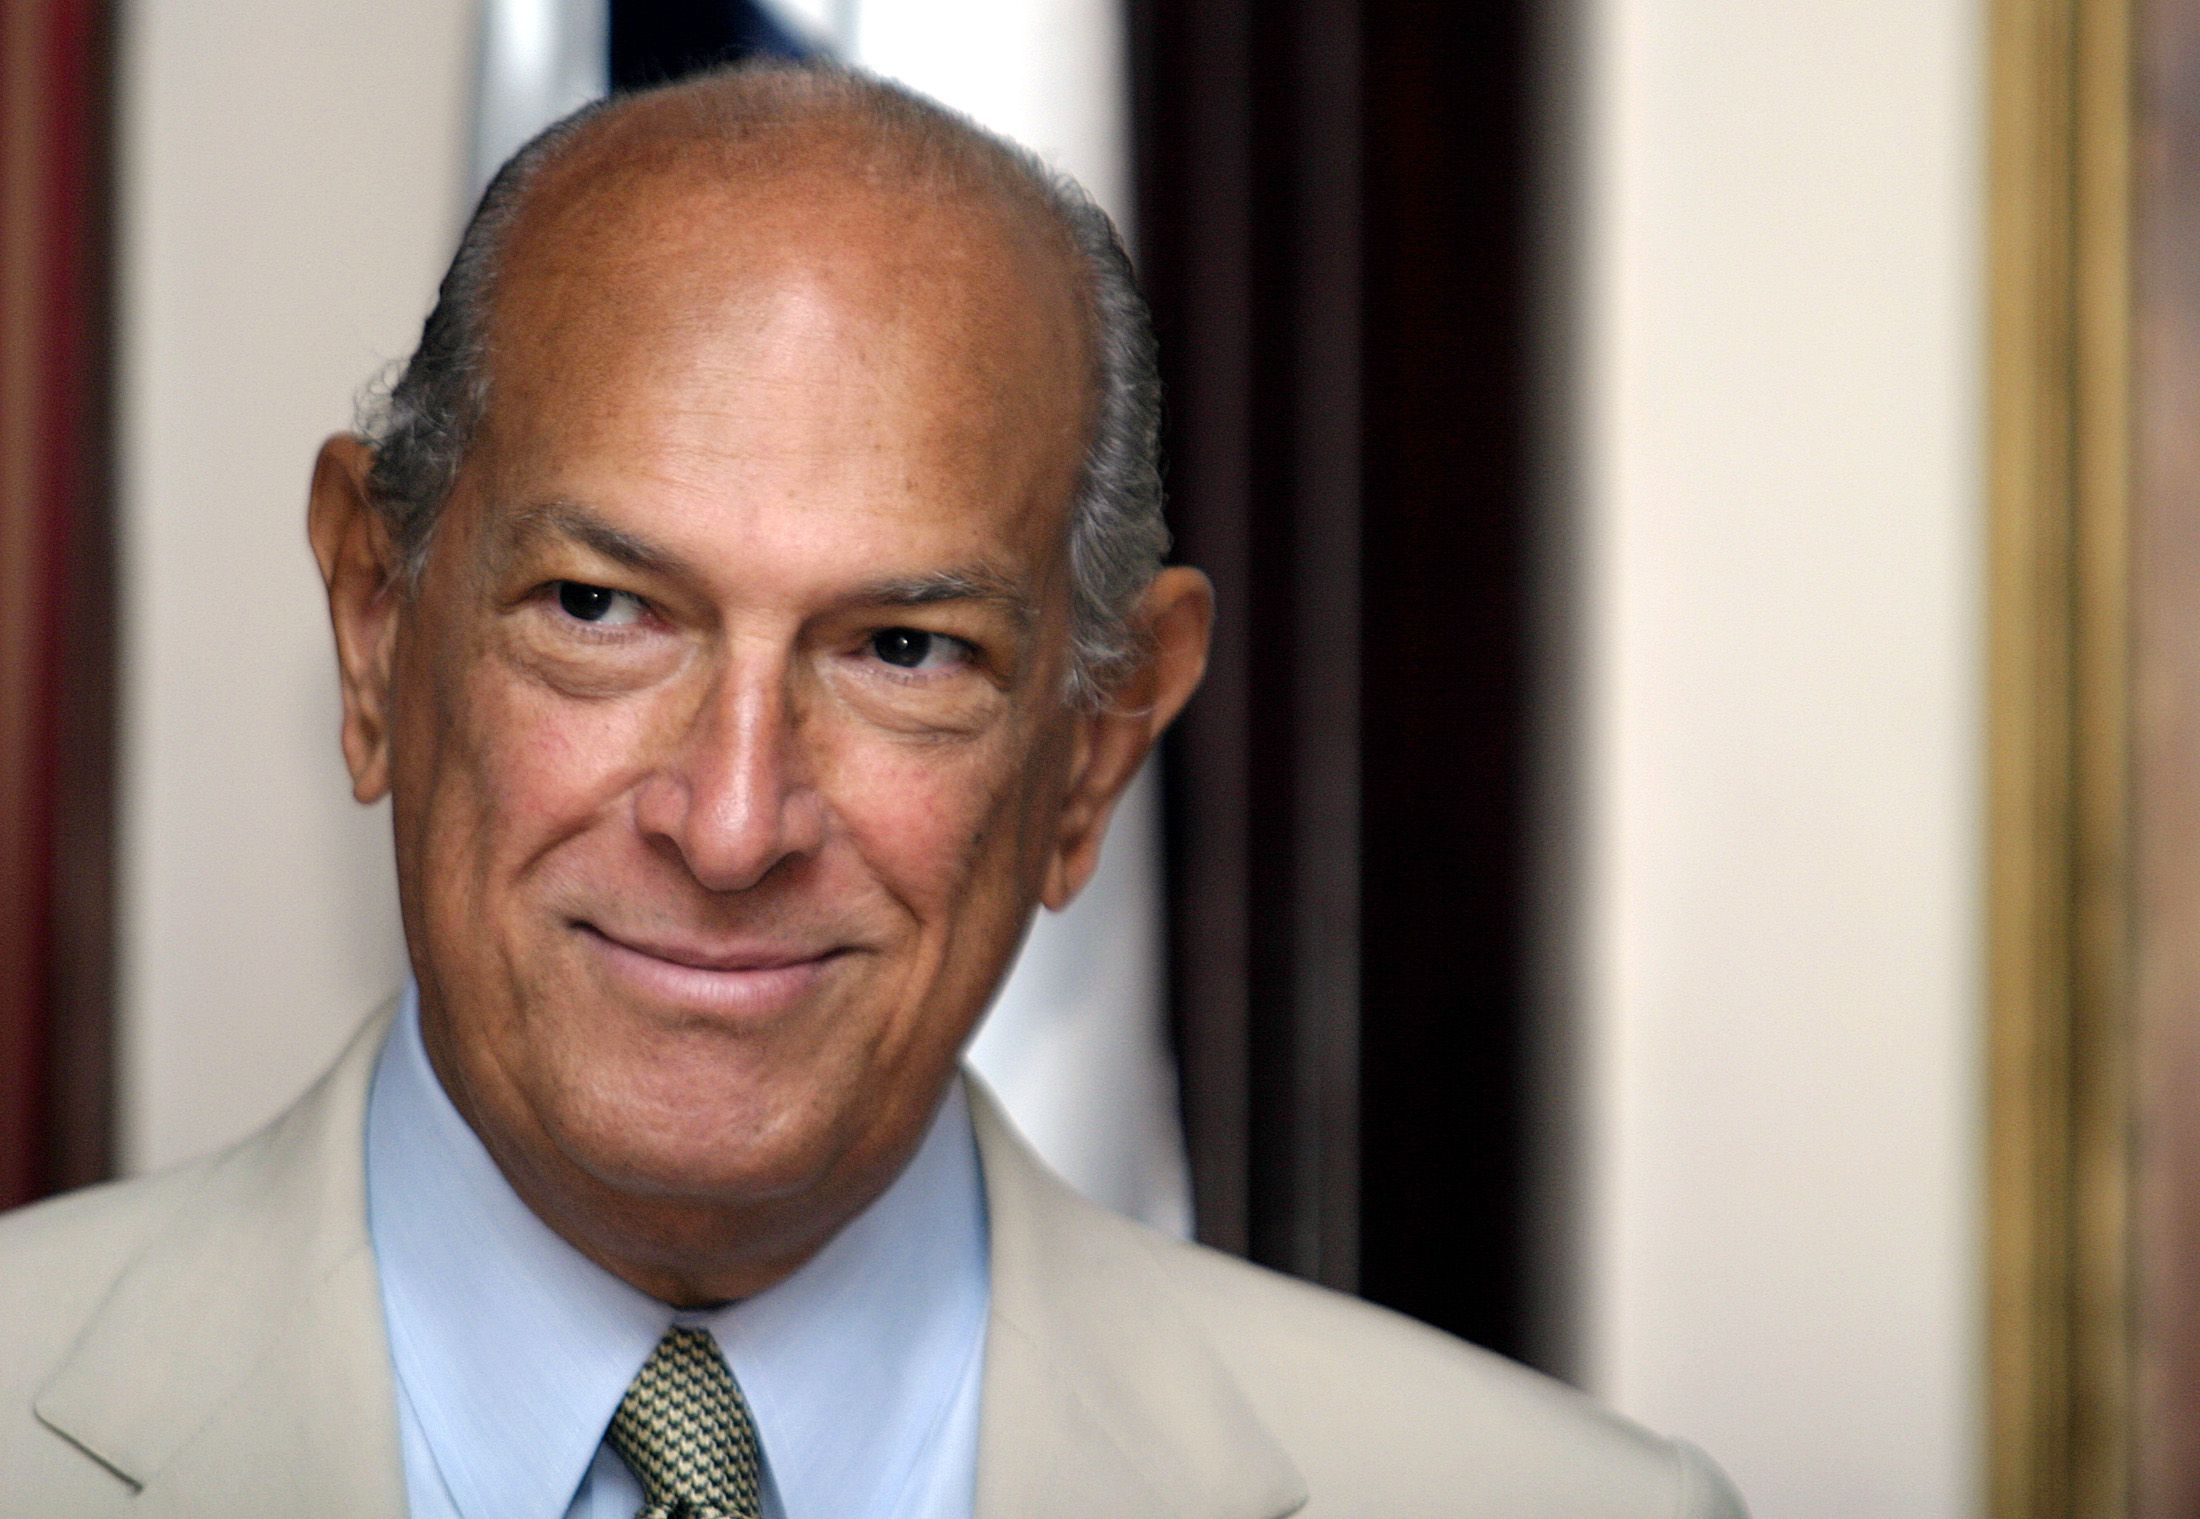 Fashion designer Oscar de la Renta (R) is welcomed to Panama City by Mayor Juan Carlos Navarro, in Panama City, April 12, 2005. De la Renta is set to exhibit his Spring-Summer collection in Panama at a benefit fashion show, which aims to raise money for low-income neighborhoods in Panama. It will feature about 75 of De la Renta's pieces, including a new men's sportswear line. AL/HB - RTR7WW0